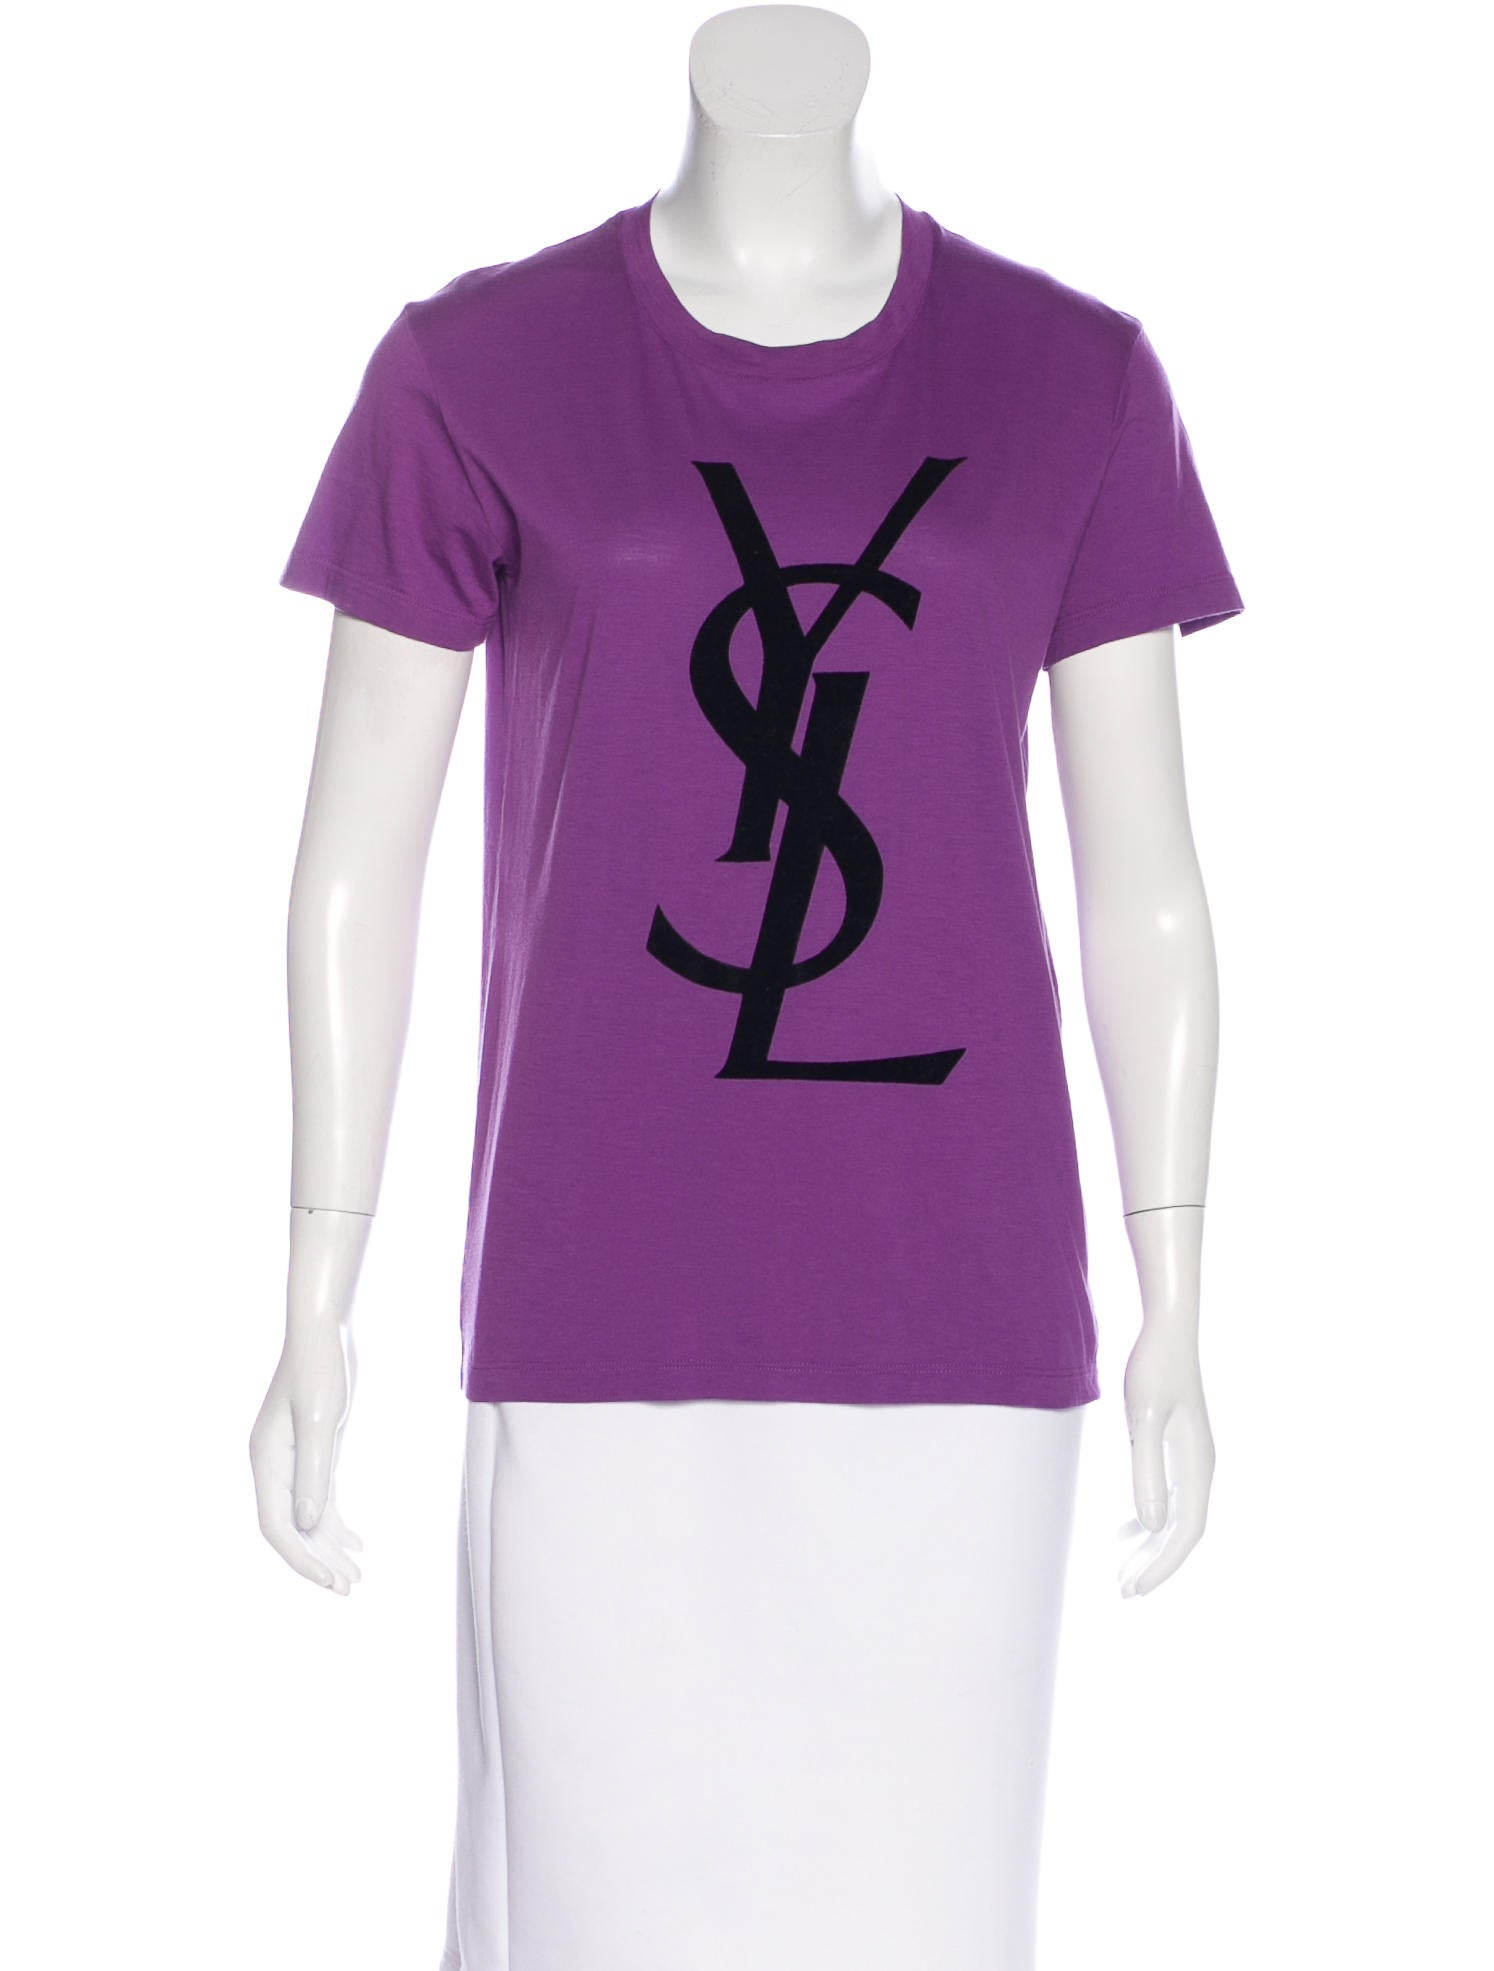 yves saint laurent logo print short sleeve t shirt. Black Bedroom Furniture Sets. Home Design Ideas